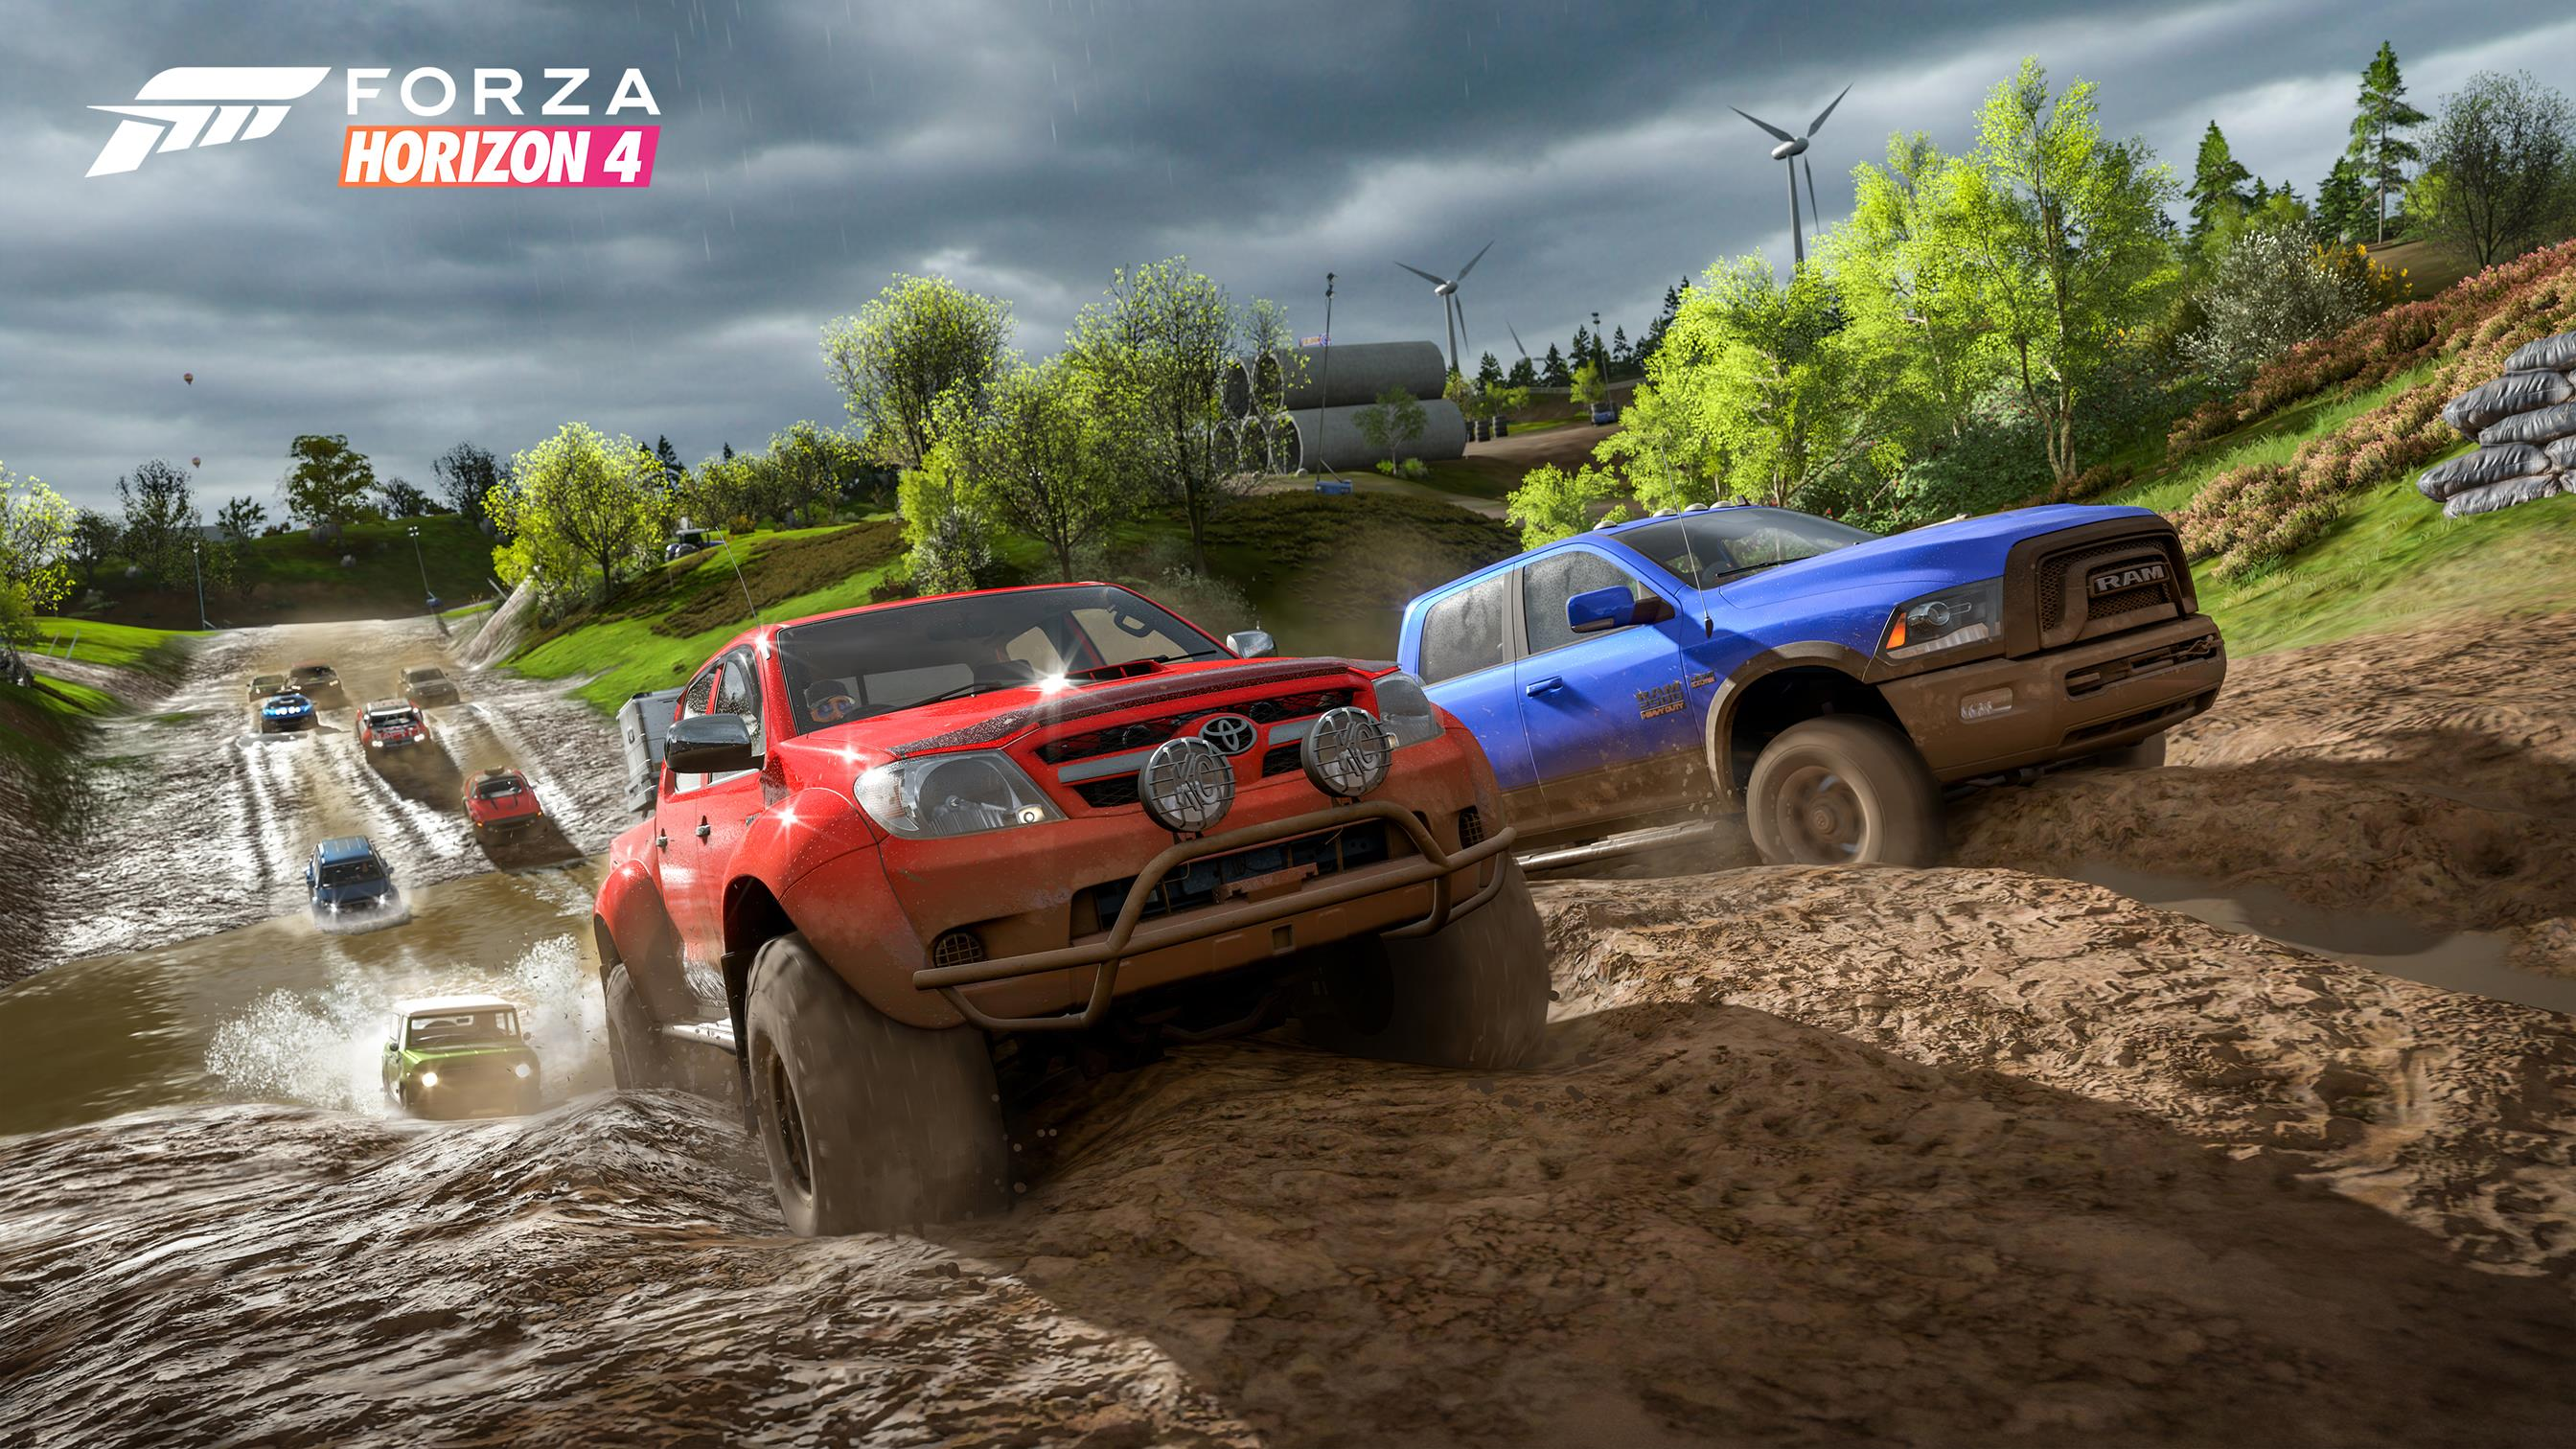 Forza Horizon 4 Hands-On